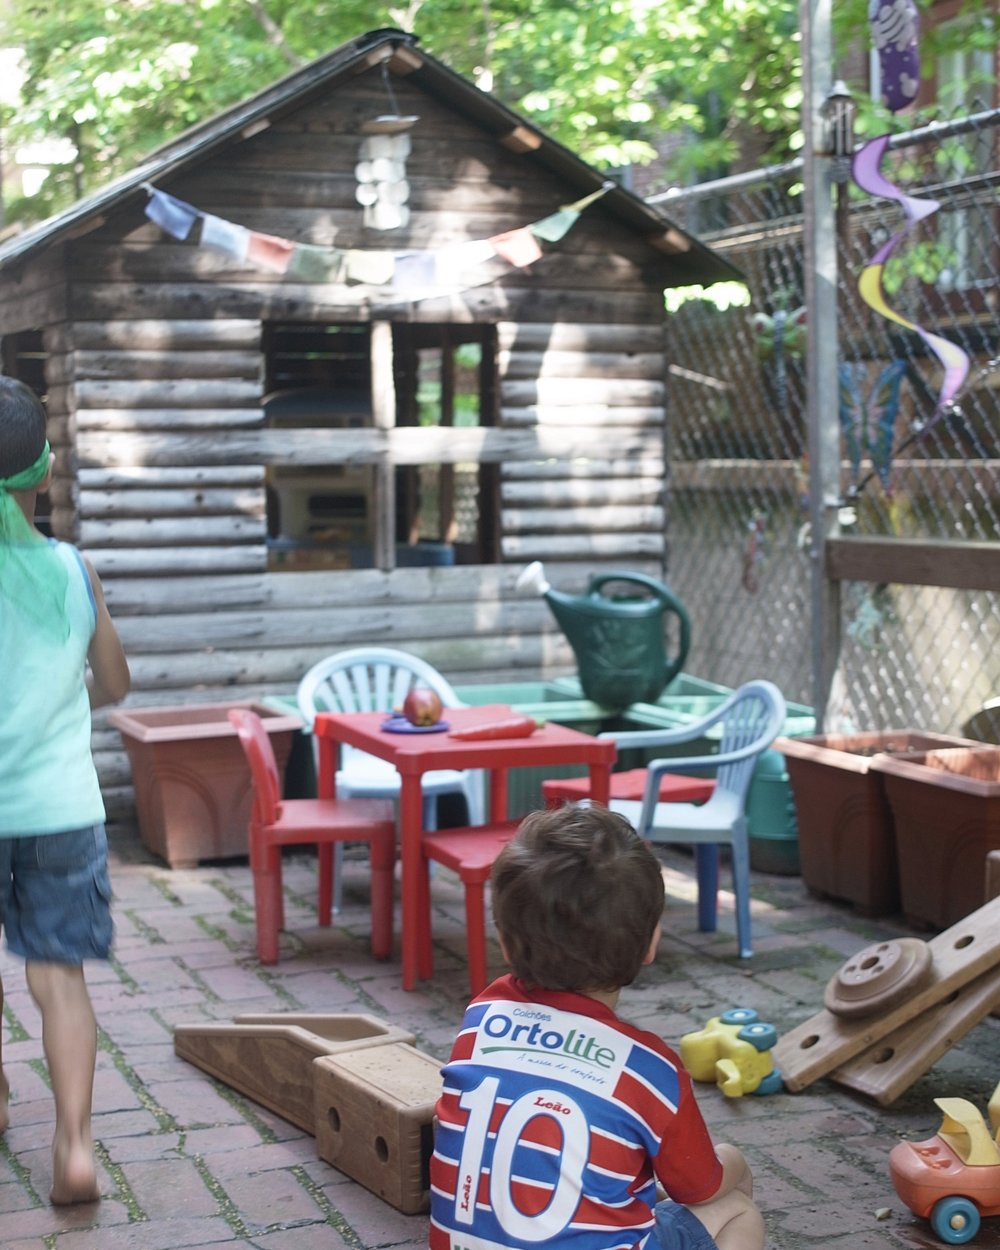 And we have our own side yard! - We spend a lot of time in the yard playing in the log cabin, digging in the sandboxes, ramping and rolling, and having fun with water play.